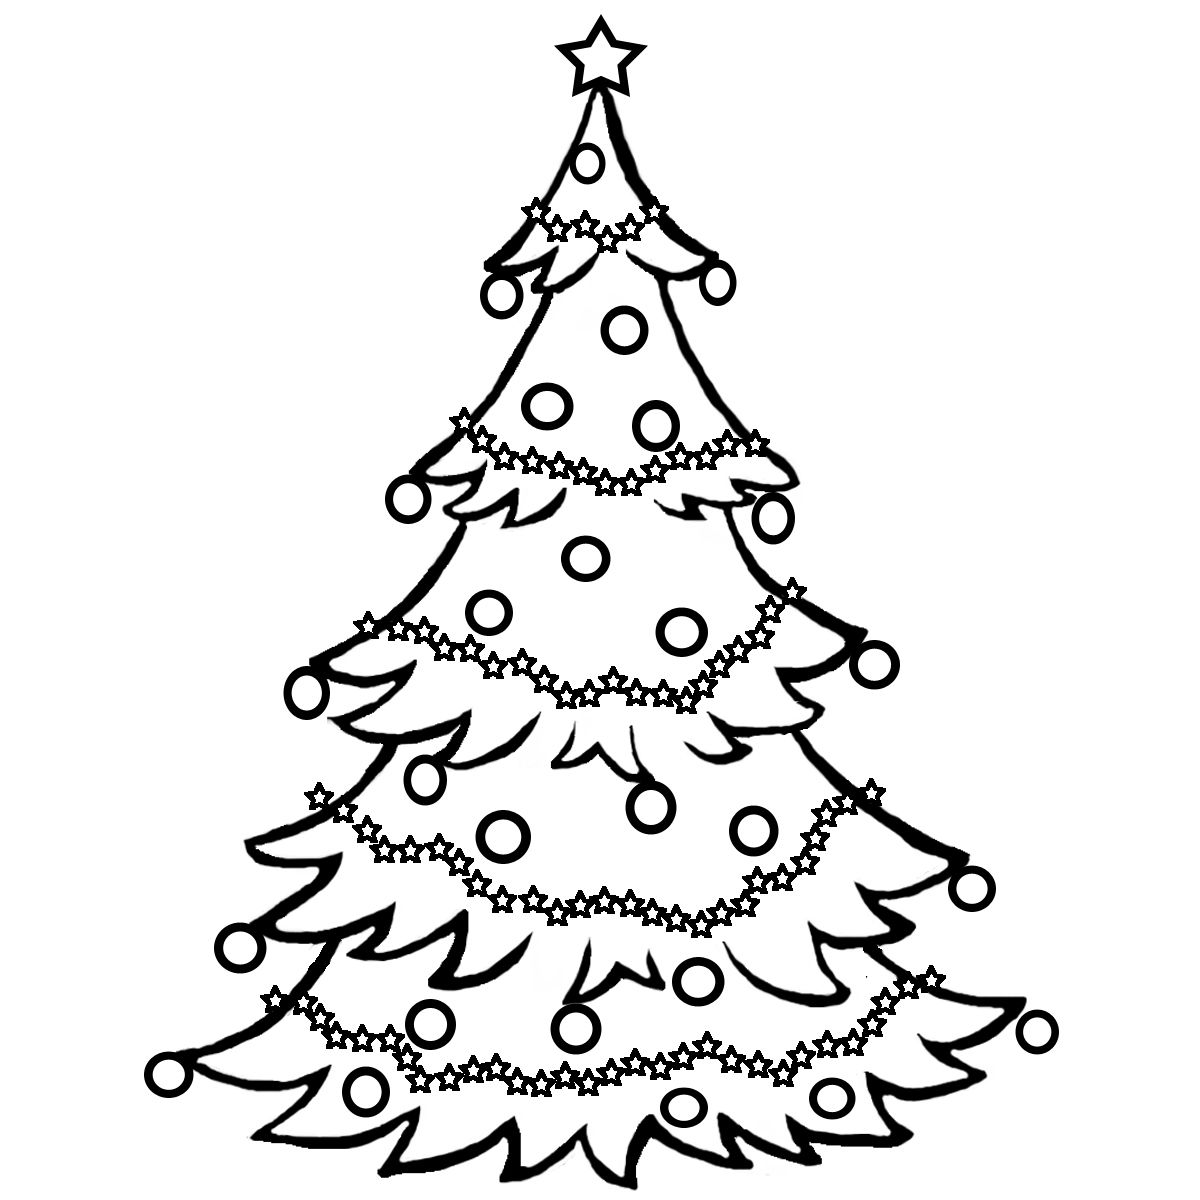 How To Draw A Christmas Tree Without Decoration